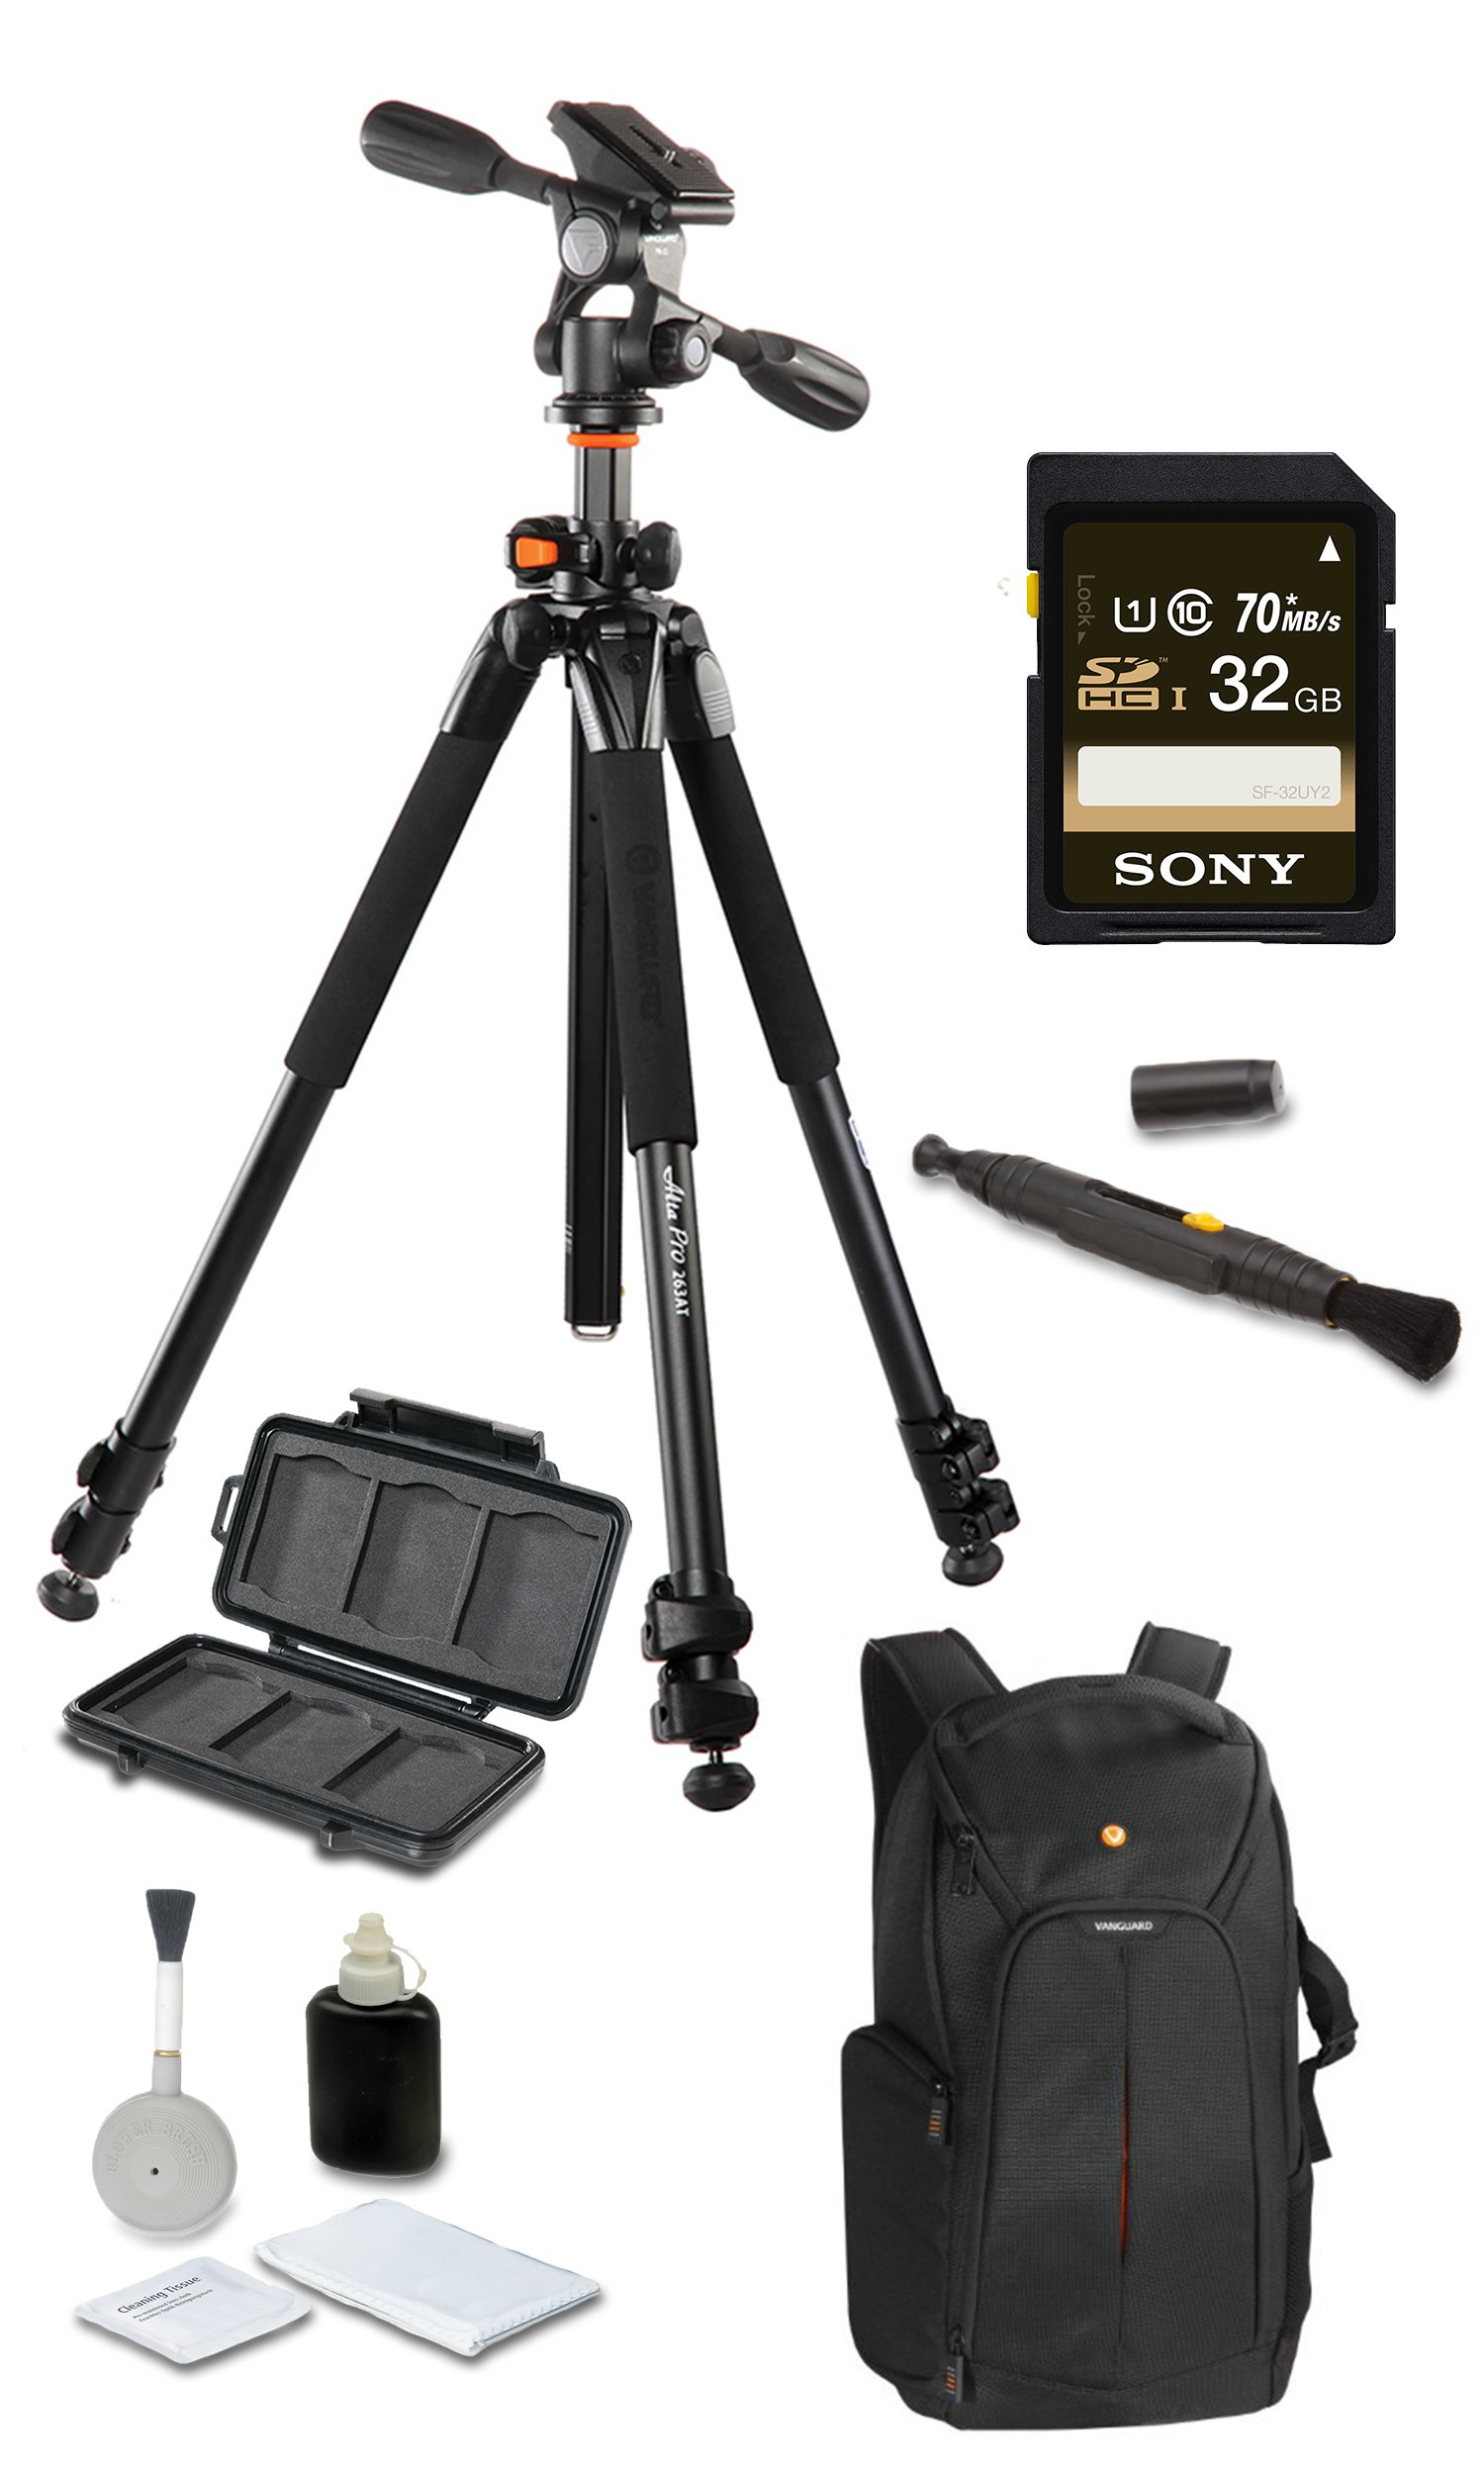 Vanguard Alta Pro 263AP Deluxe Bundle + Vanguard 2GO 46 + SONY 32GB SD Card + Cleaning Kit 4pc + Lens Pen Cleaning Brush + Memory Card Wallet + Much More!